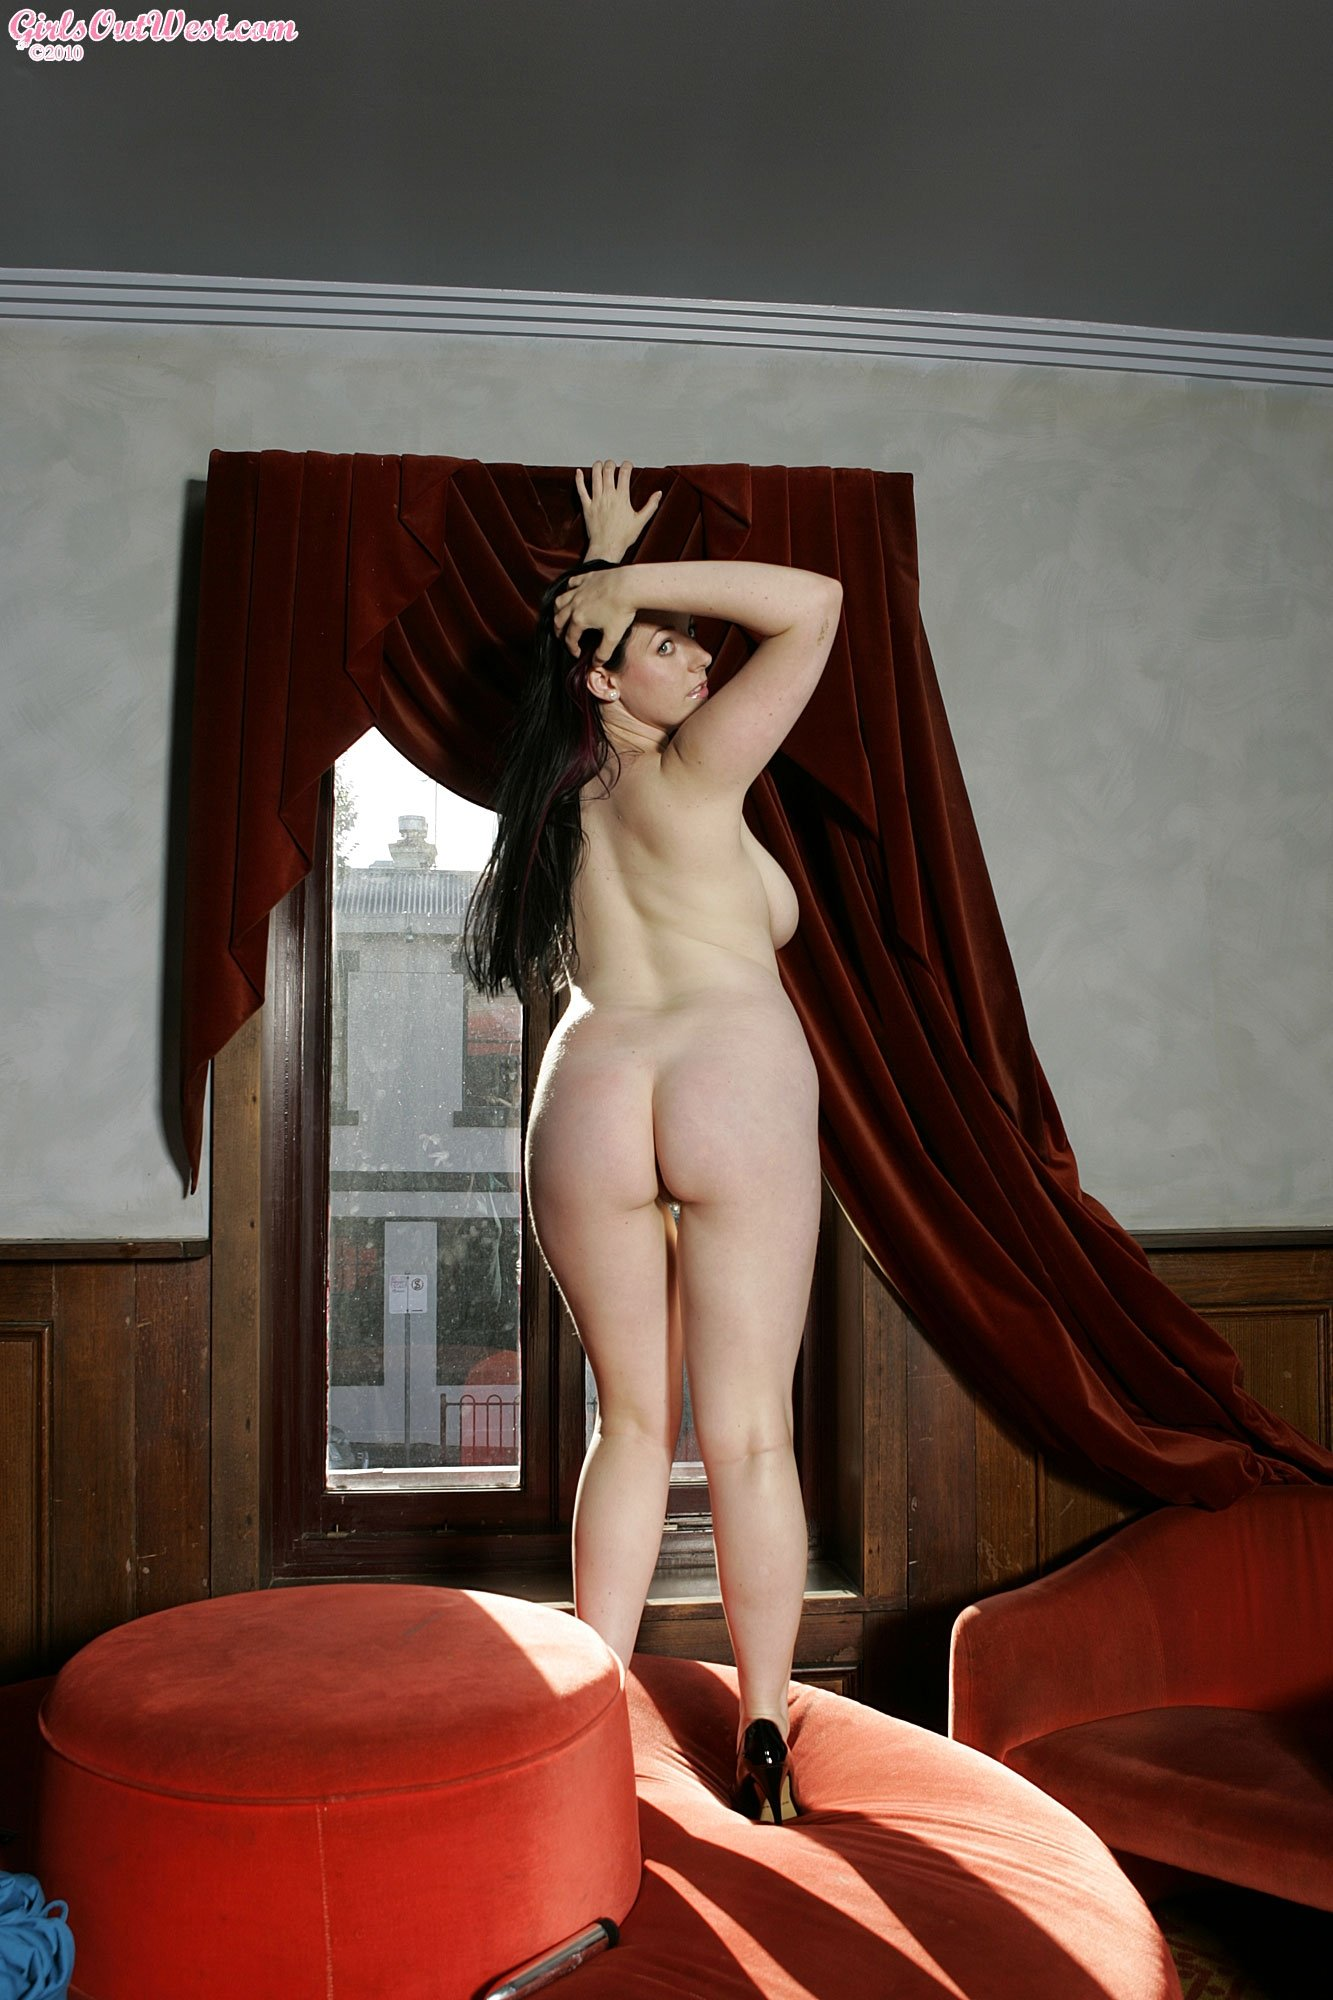 1st time xvideo com Lady melody adult